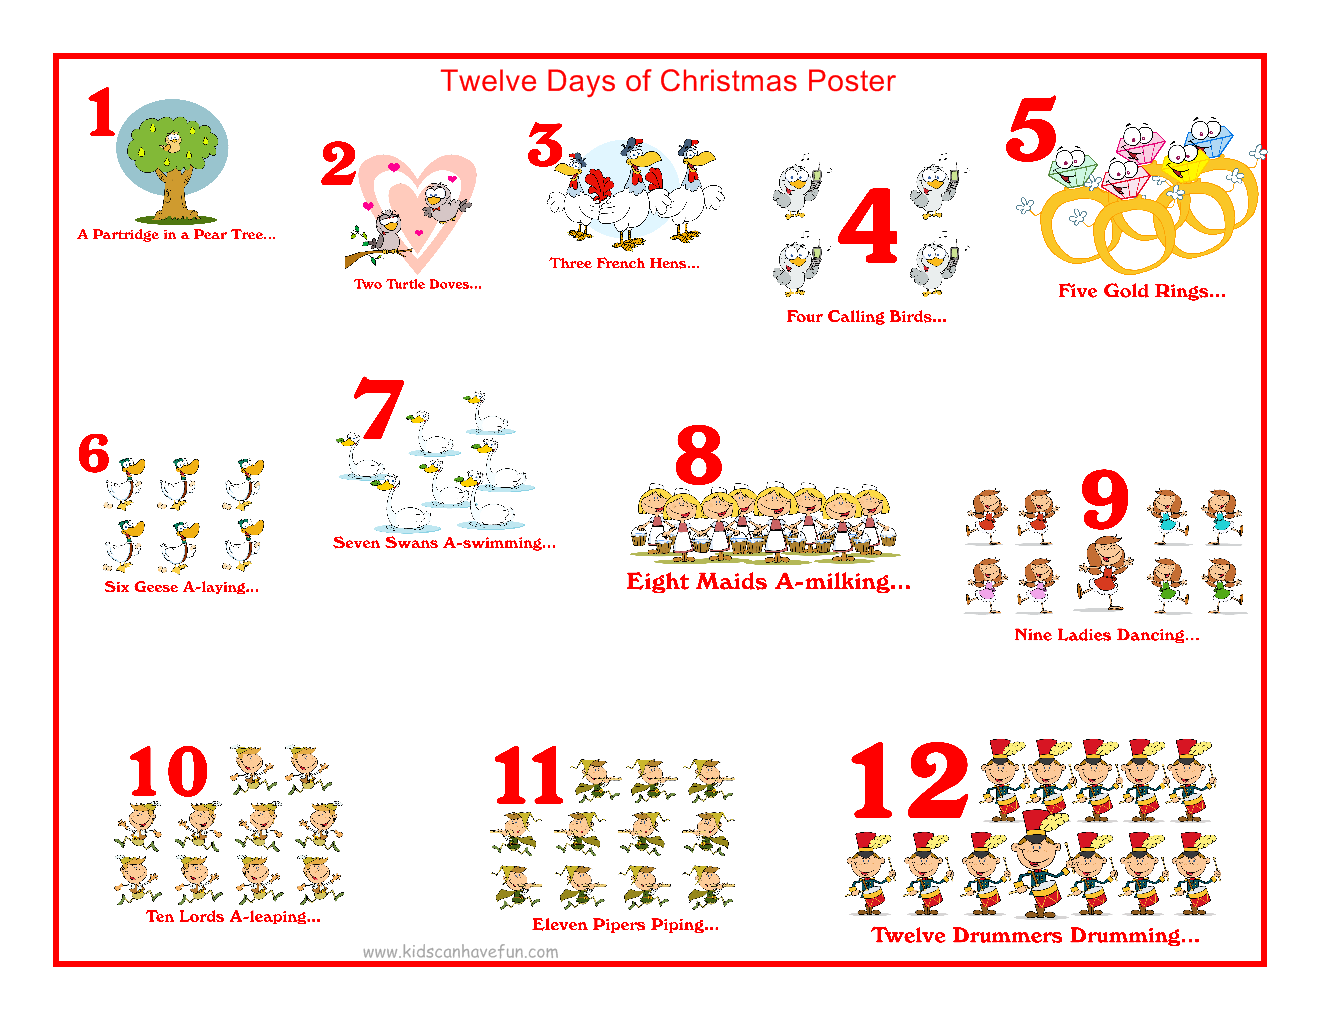 12-days-of-christmas-poster